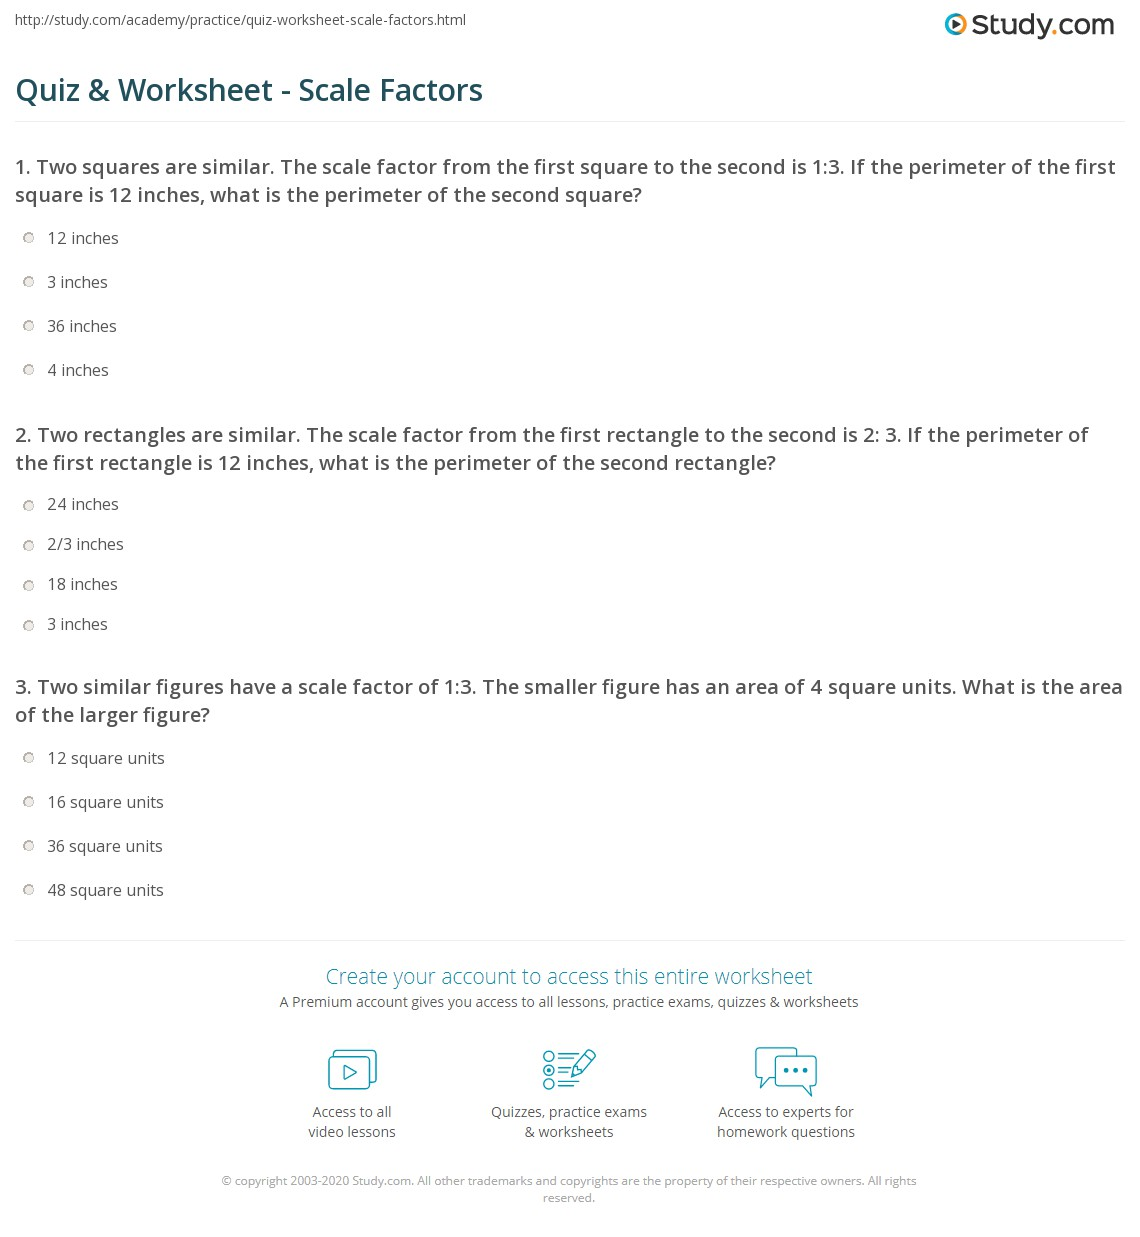 worksheet Scale Factor Worksheet 7th Grade quiz worksheet scale factors study com the factor from first rectangle to second is 2 3 if perimeter of 12 inches what perimeter